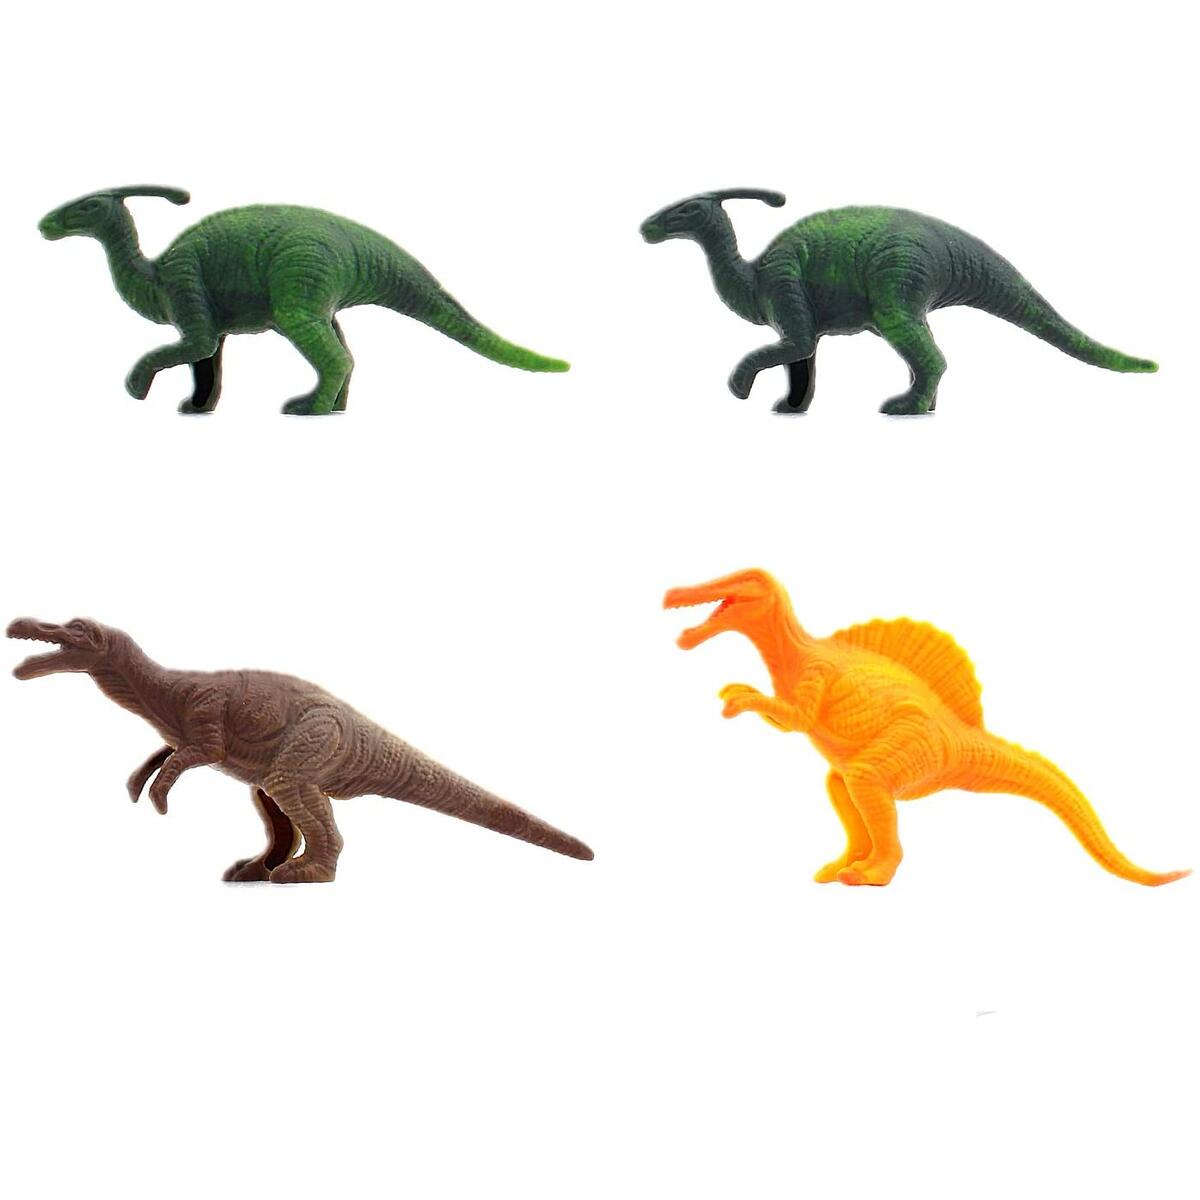 sunwuking Electronic Dinosaur Toys Green Walking Tyrannosaurus Rex Dinosaur with Lights & Sounds, Real Movement, Multicolor for Boys Girls Realistic Dino World